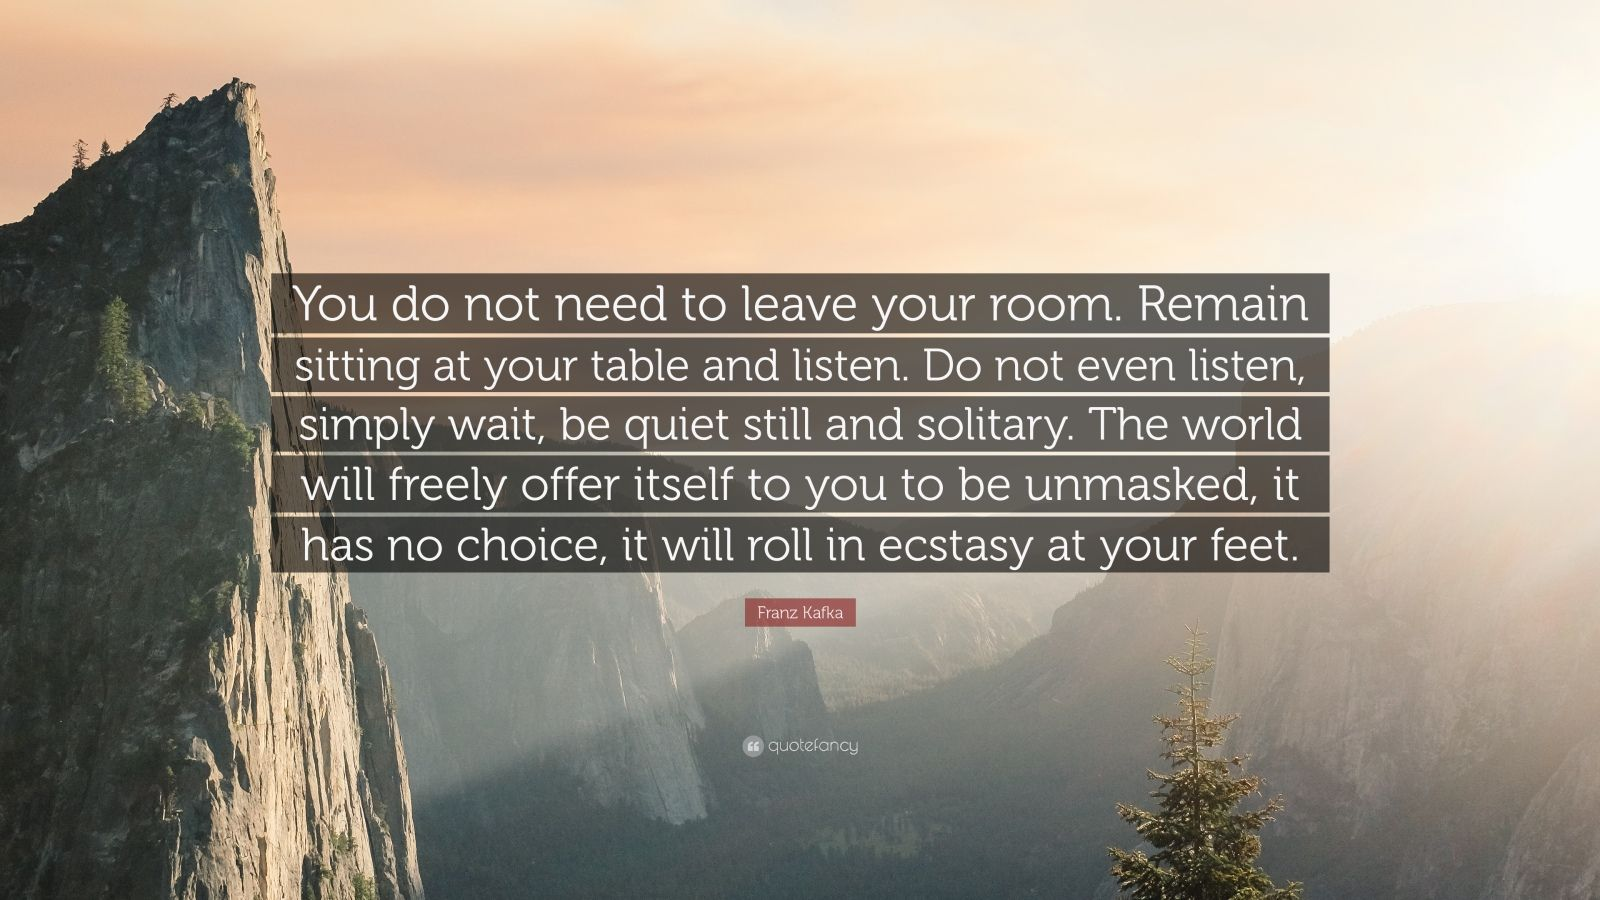 "Franz Kafka Quote: ""You do not need to leave your room. Remain sitting at your table and listen. Do not even listen, simply wait, be quiet still and solitary. The world will freely offer itself to you to be unmasked, it has no choice, it will roll in ecstasy at your feet."""